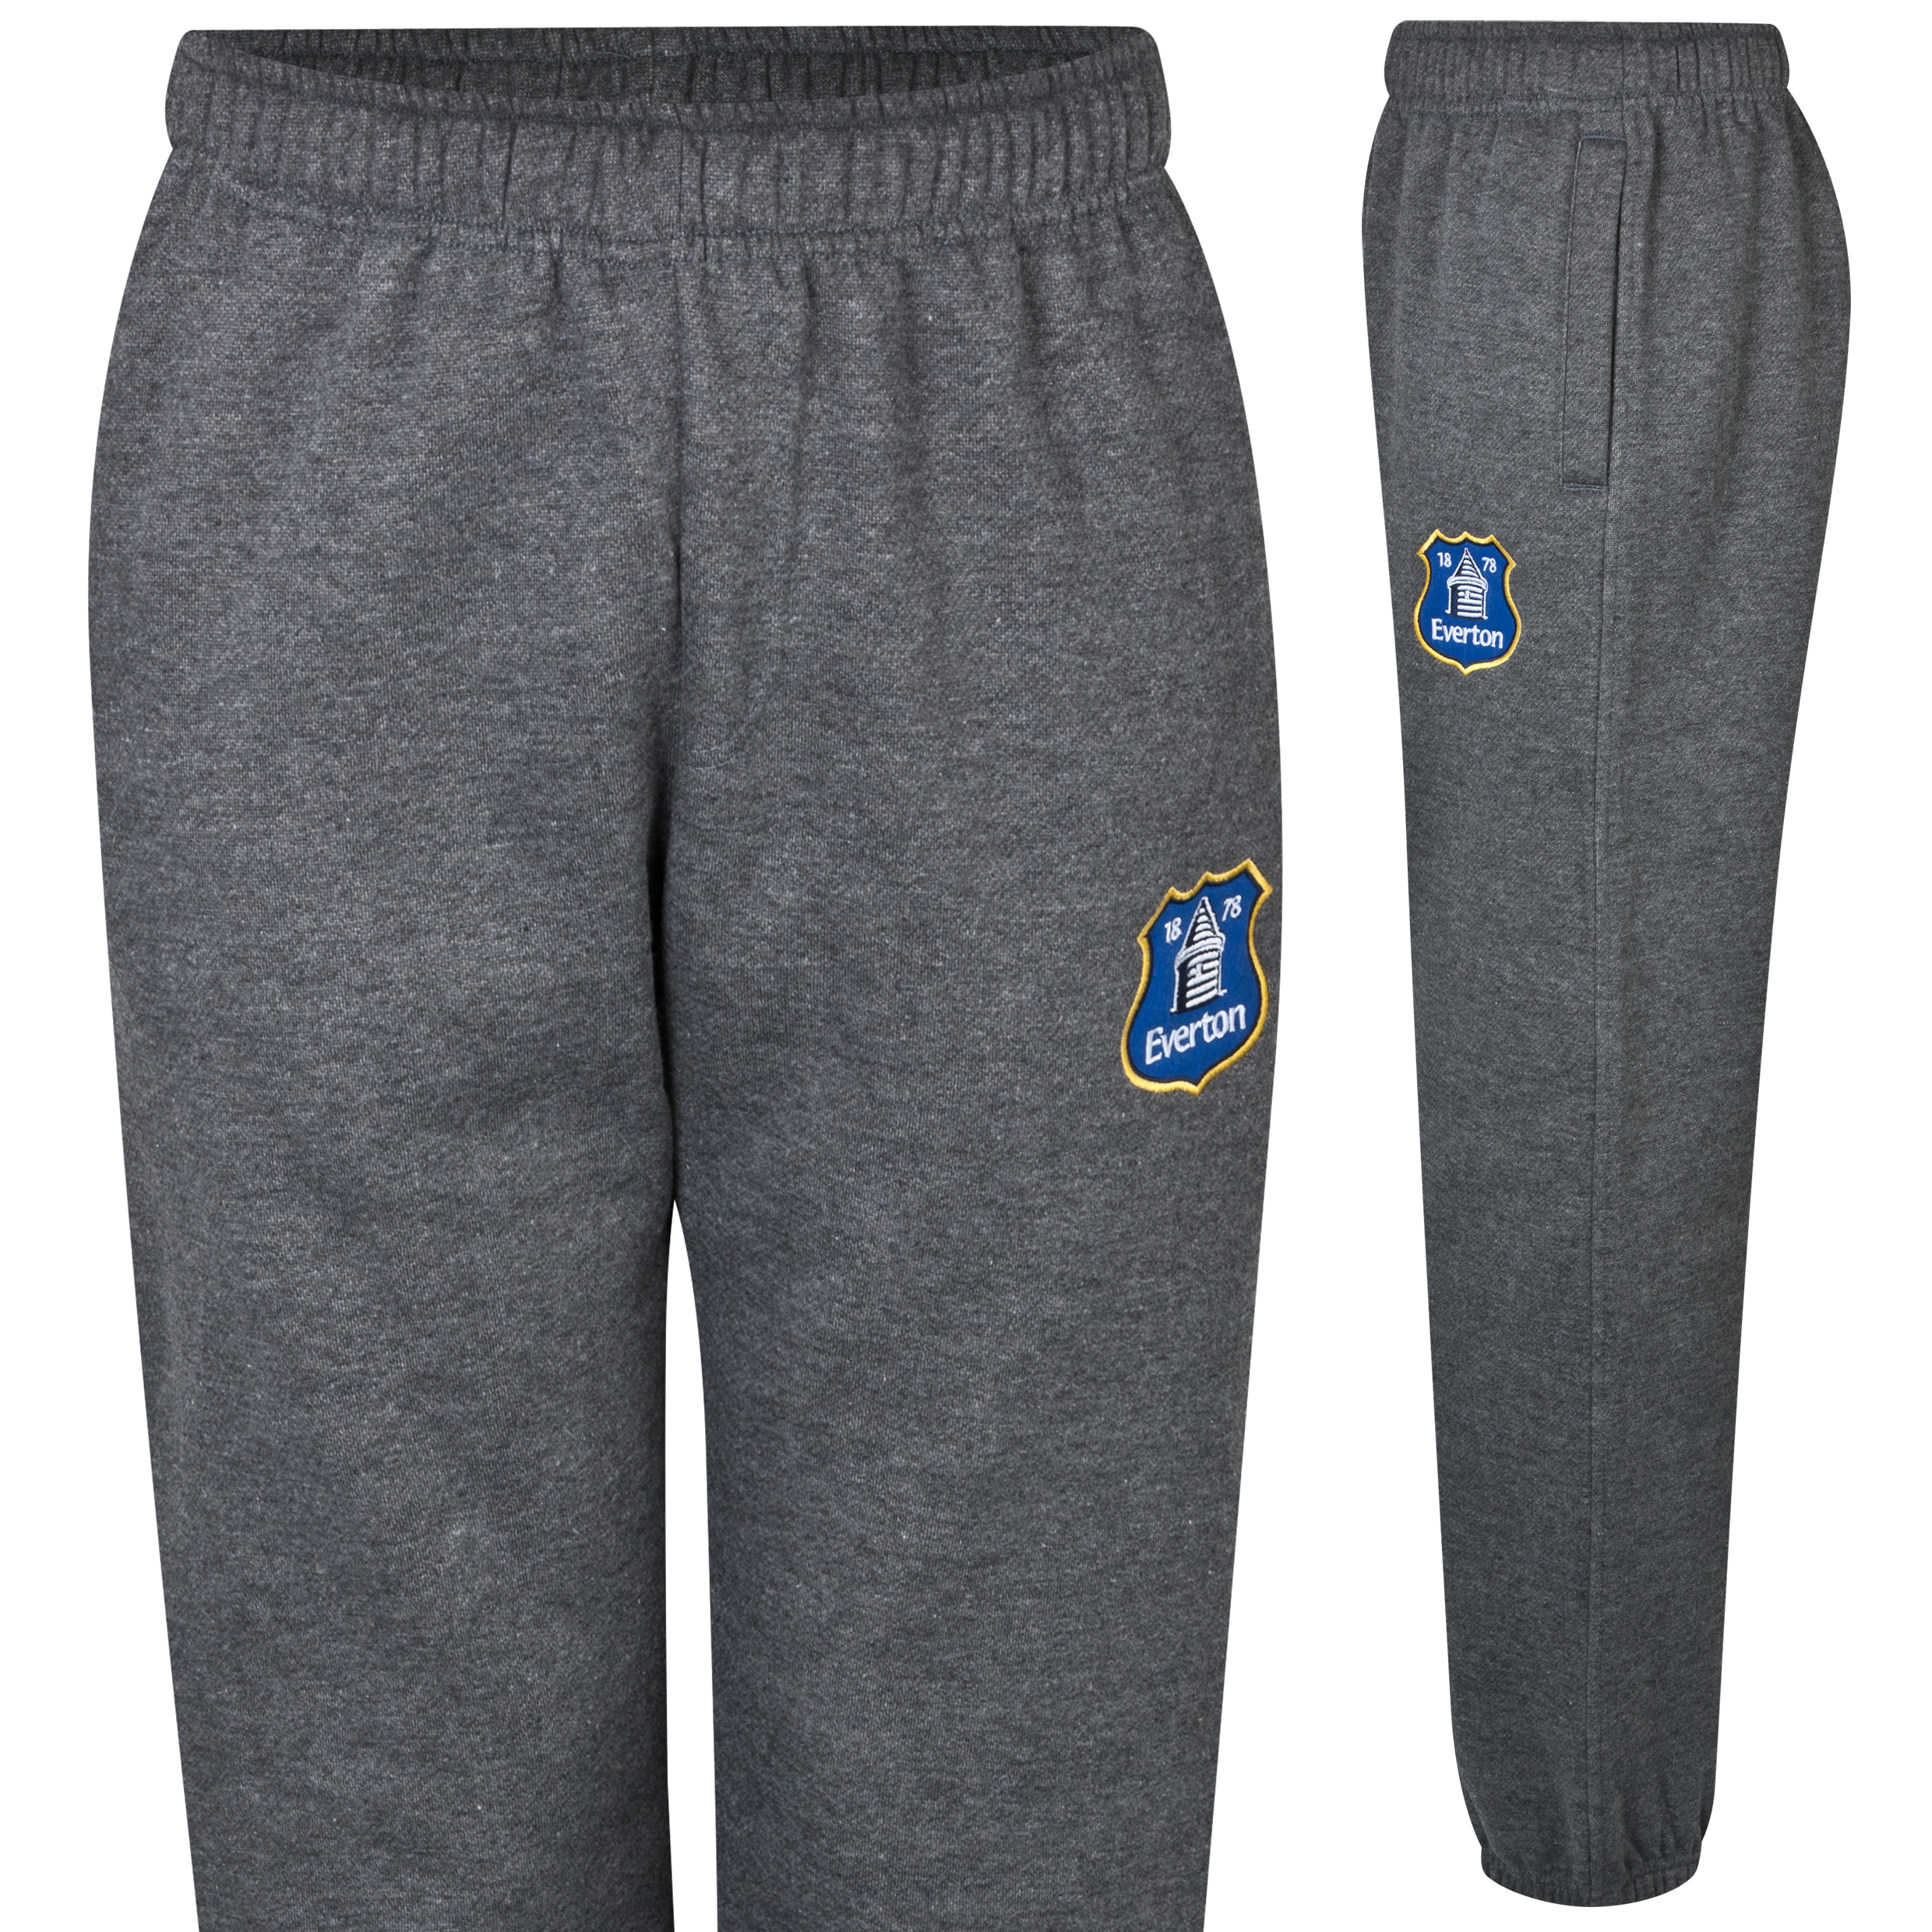 Everton Essentials Strike Pants - Older Boys Charcoal